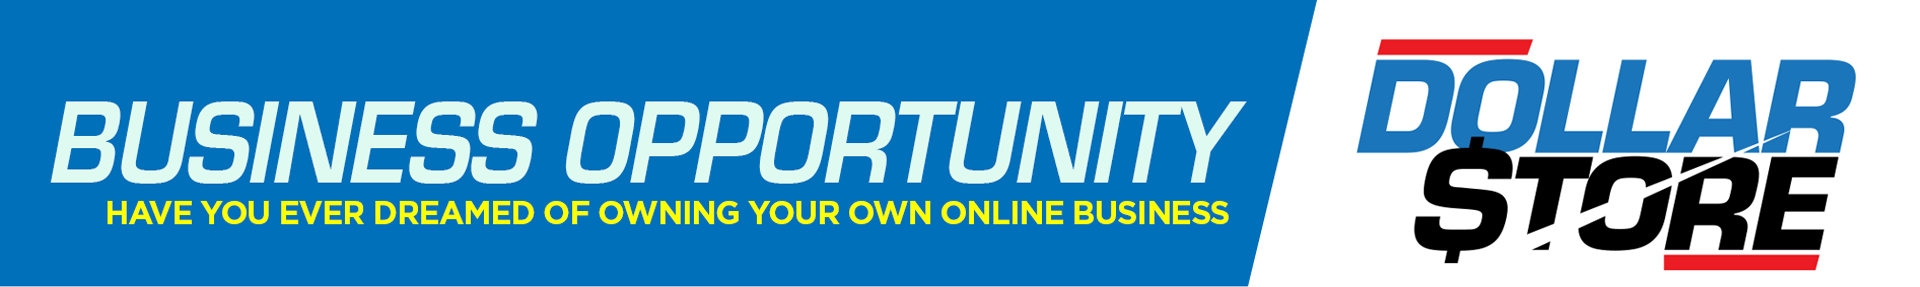 DollarStore Business Opportunity